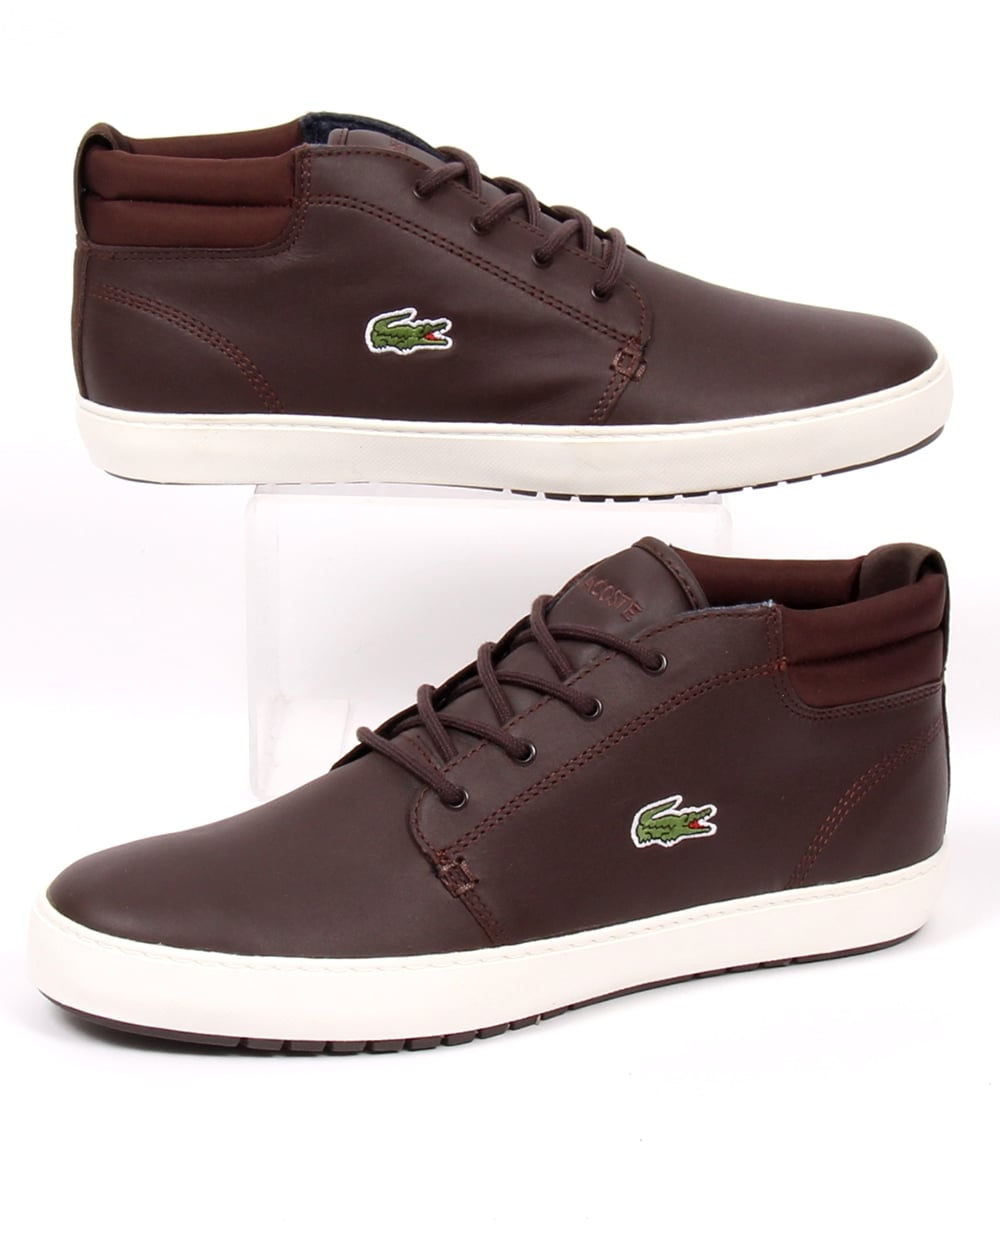 bbf59f598 Lacoste Lacoste Ampthill Terra Boots Brown Leather